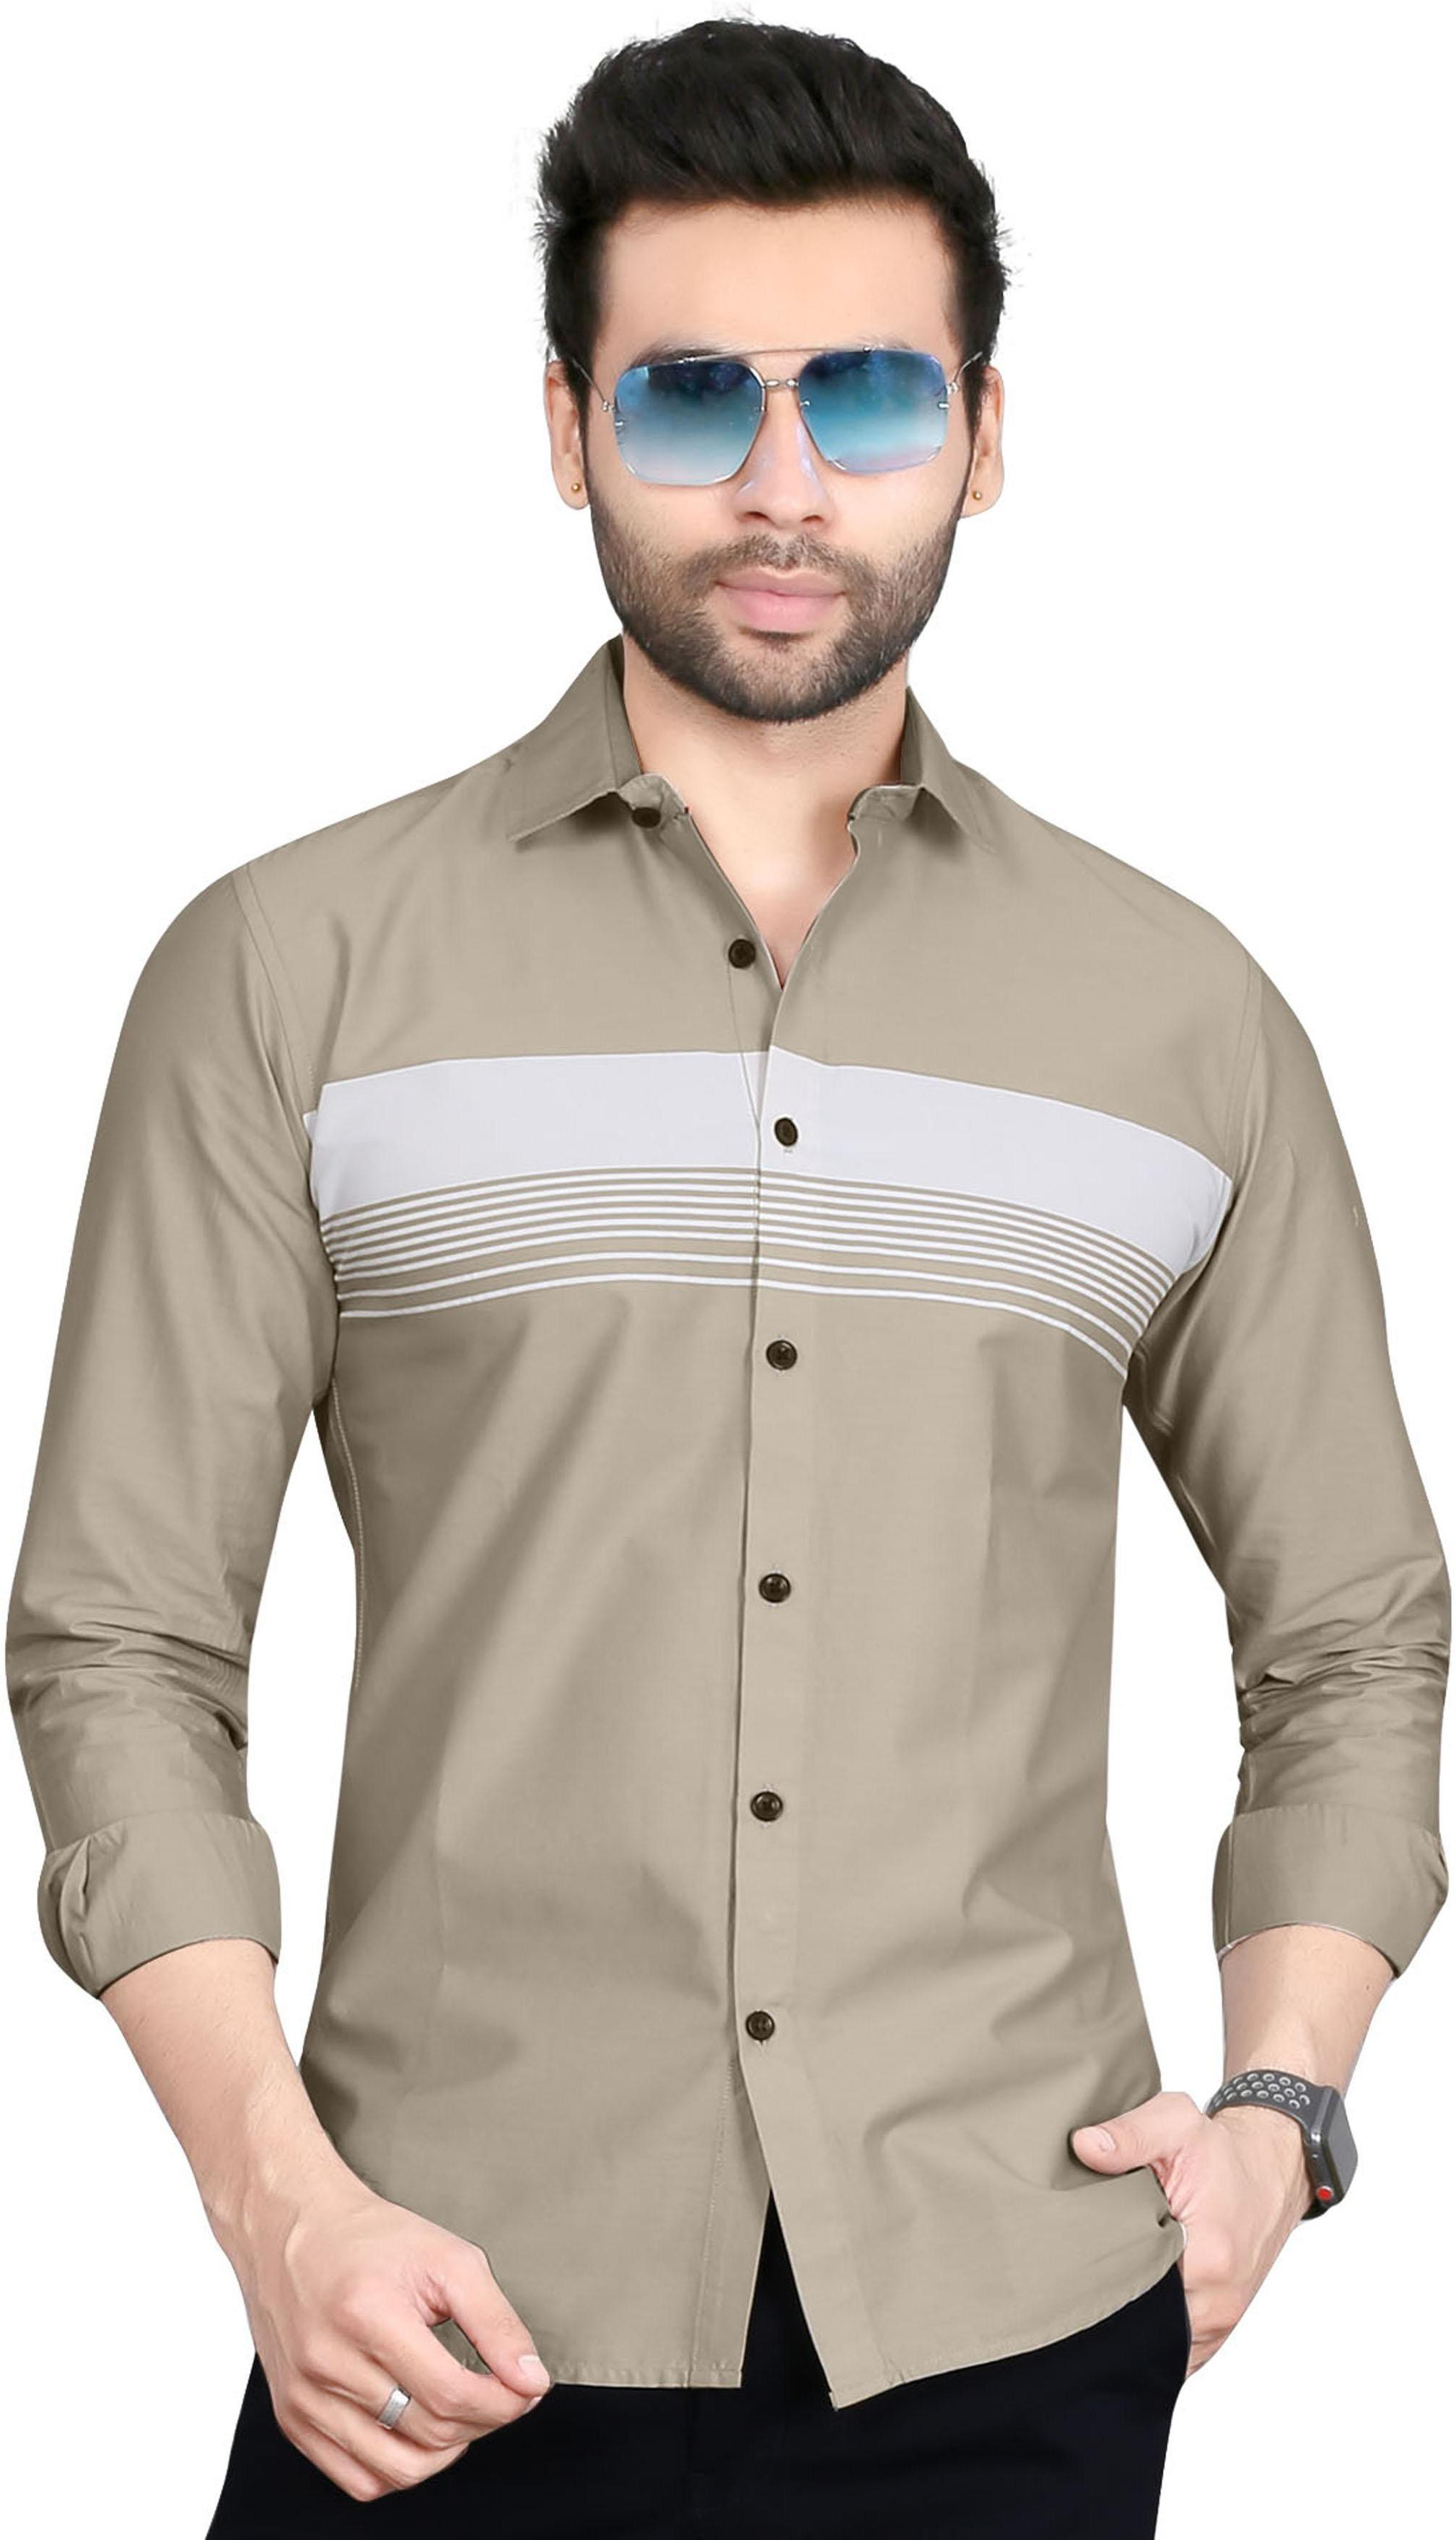 5th Anfold | Horizontal Striped Casual Cotton Shirt By 5th Anfold